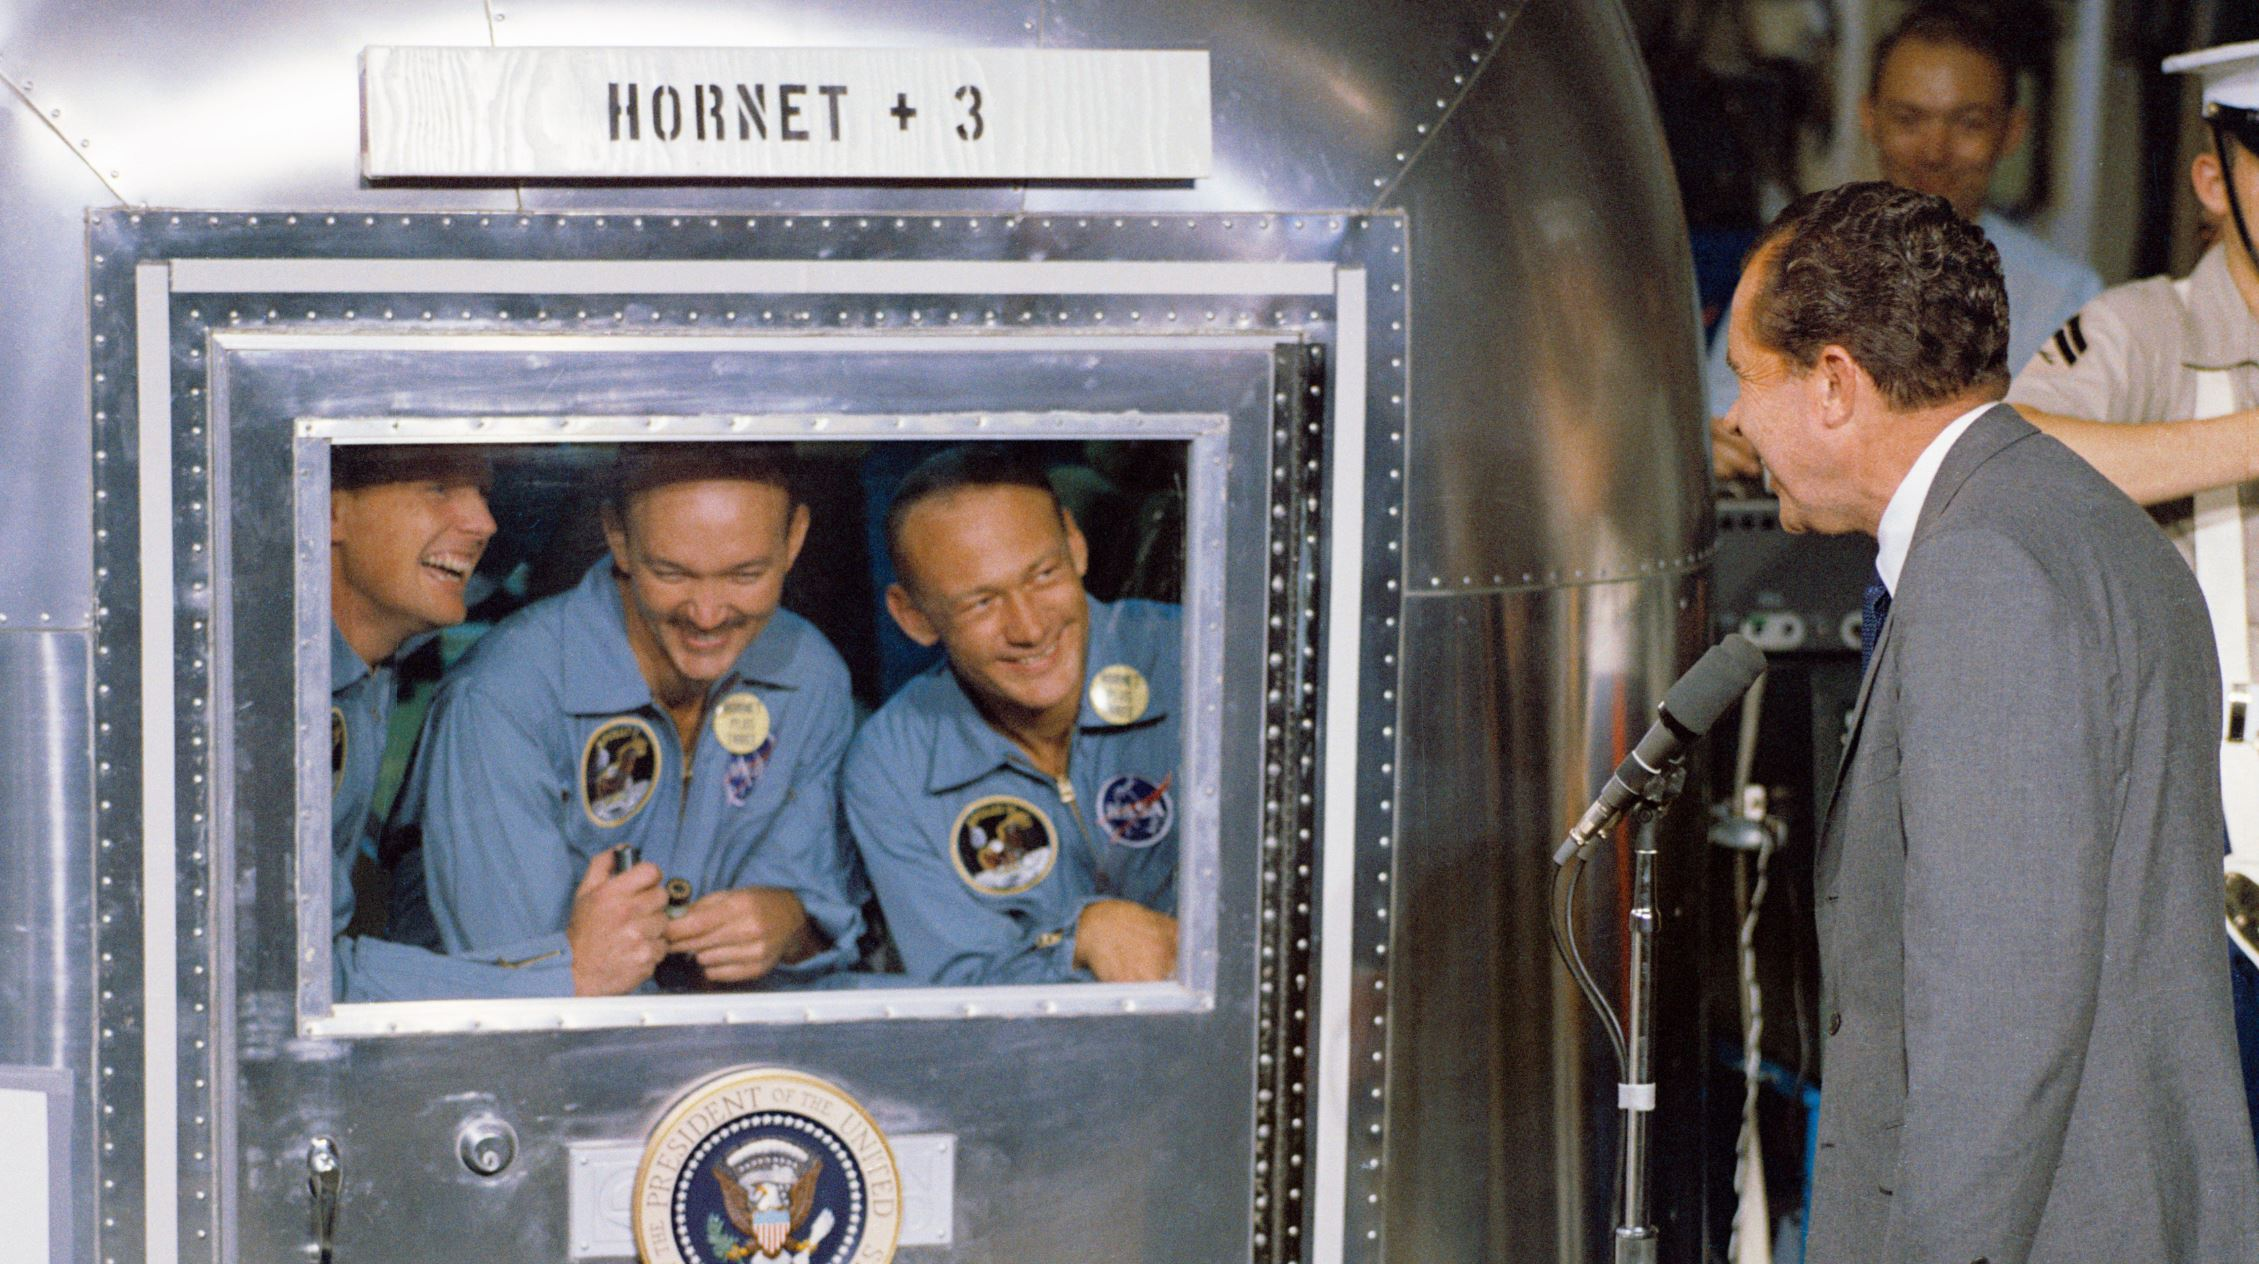 President Richard M. Nixon welcomes the Apollo 11 astronauts aboard the USS Hornet, the recovery ship for the mission, where they are quarantined. From left to right: Neil A. Armstrong, Michael Collins and Edwin E. Aldrin. - Image Credit:  NASA